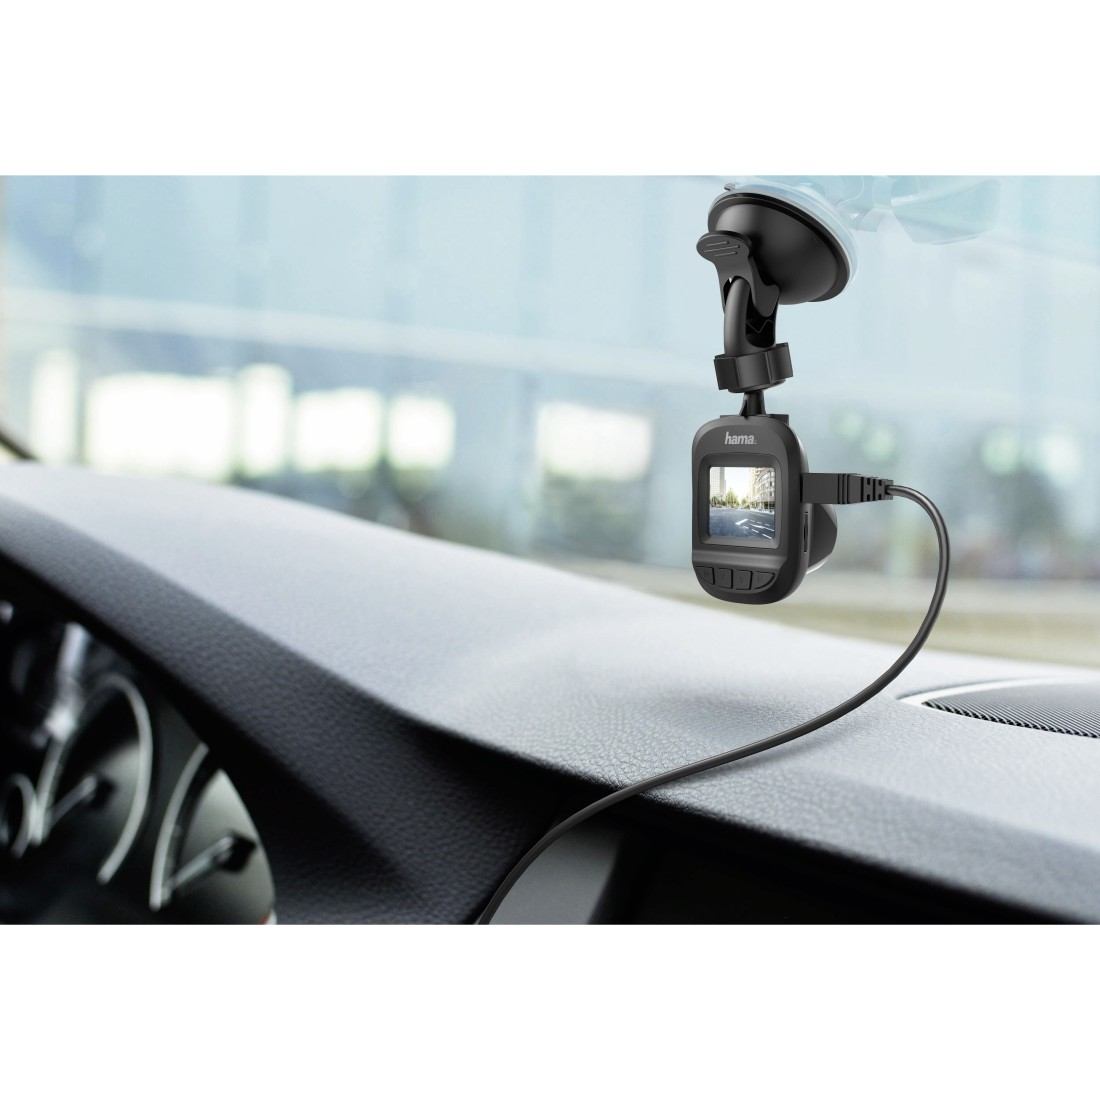 "awx High-Res Appliance - Hama, Dashcam ""60"", met ultra-groothoeklens, Automatic Night Vision"